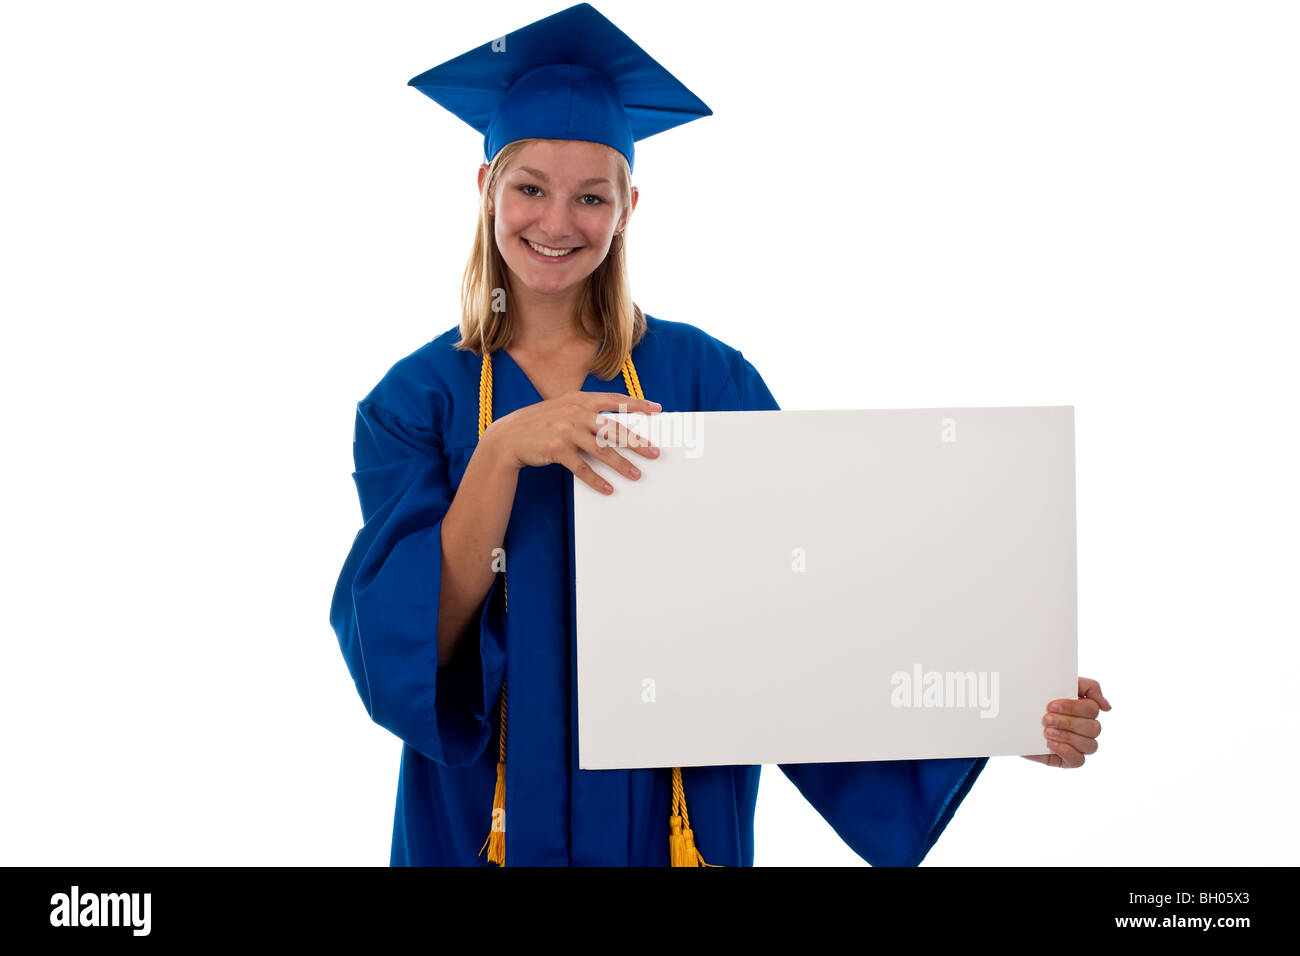 Teen Girl In Graduation Gown Stock Photos & Teen Girl In Graduation ...